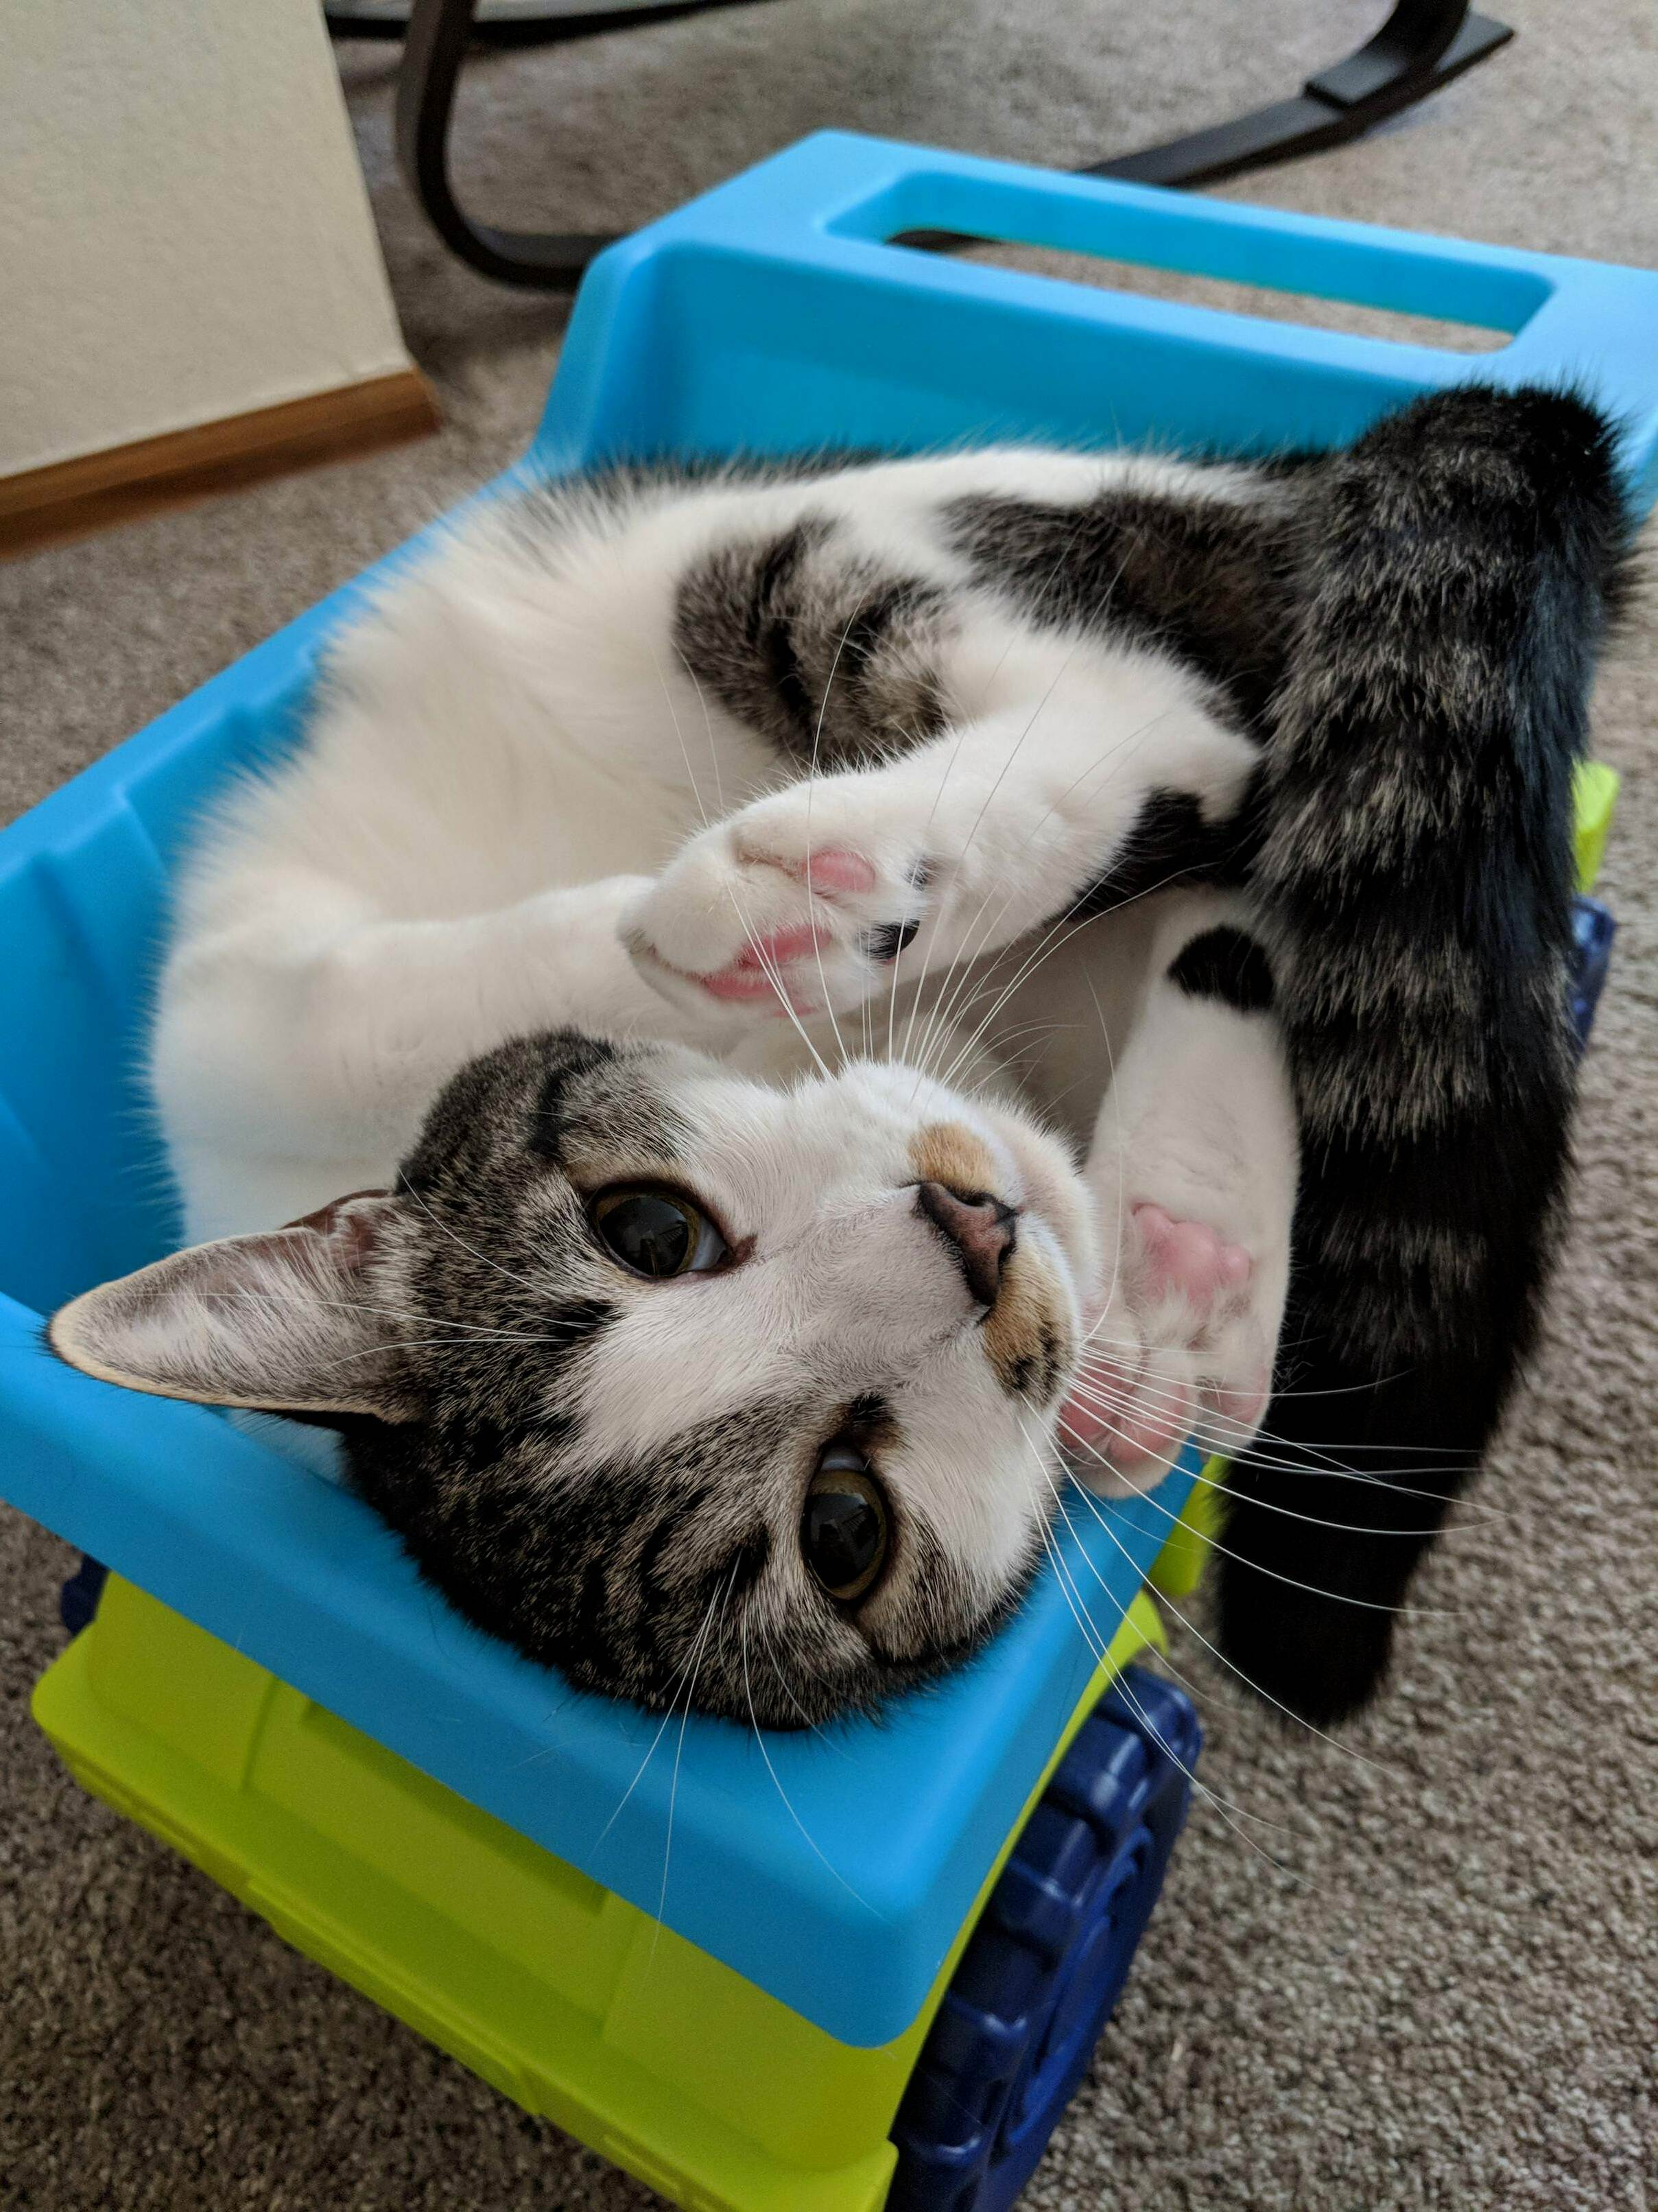 Playful kitty in a toy dump truck